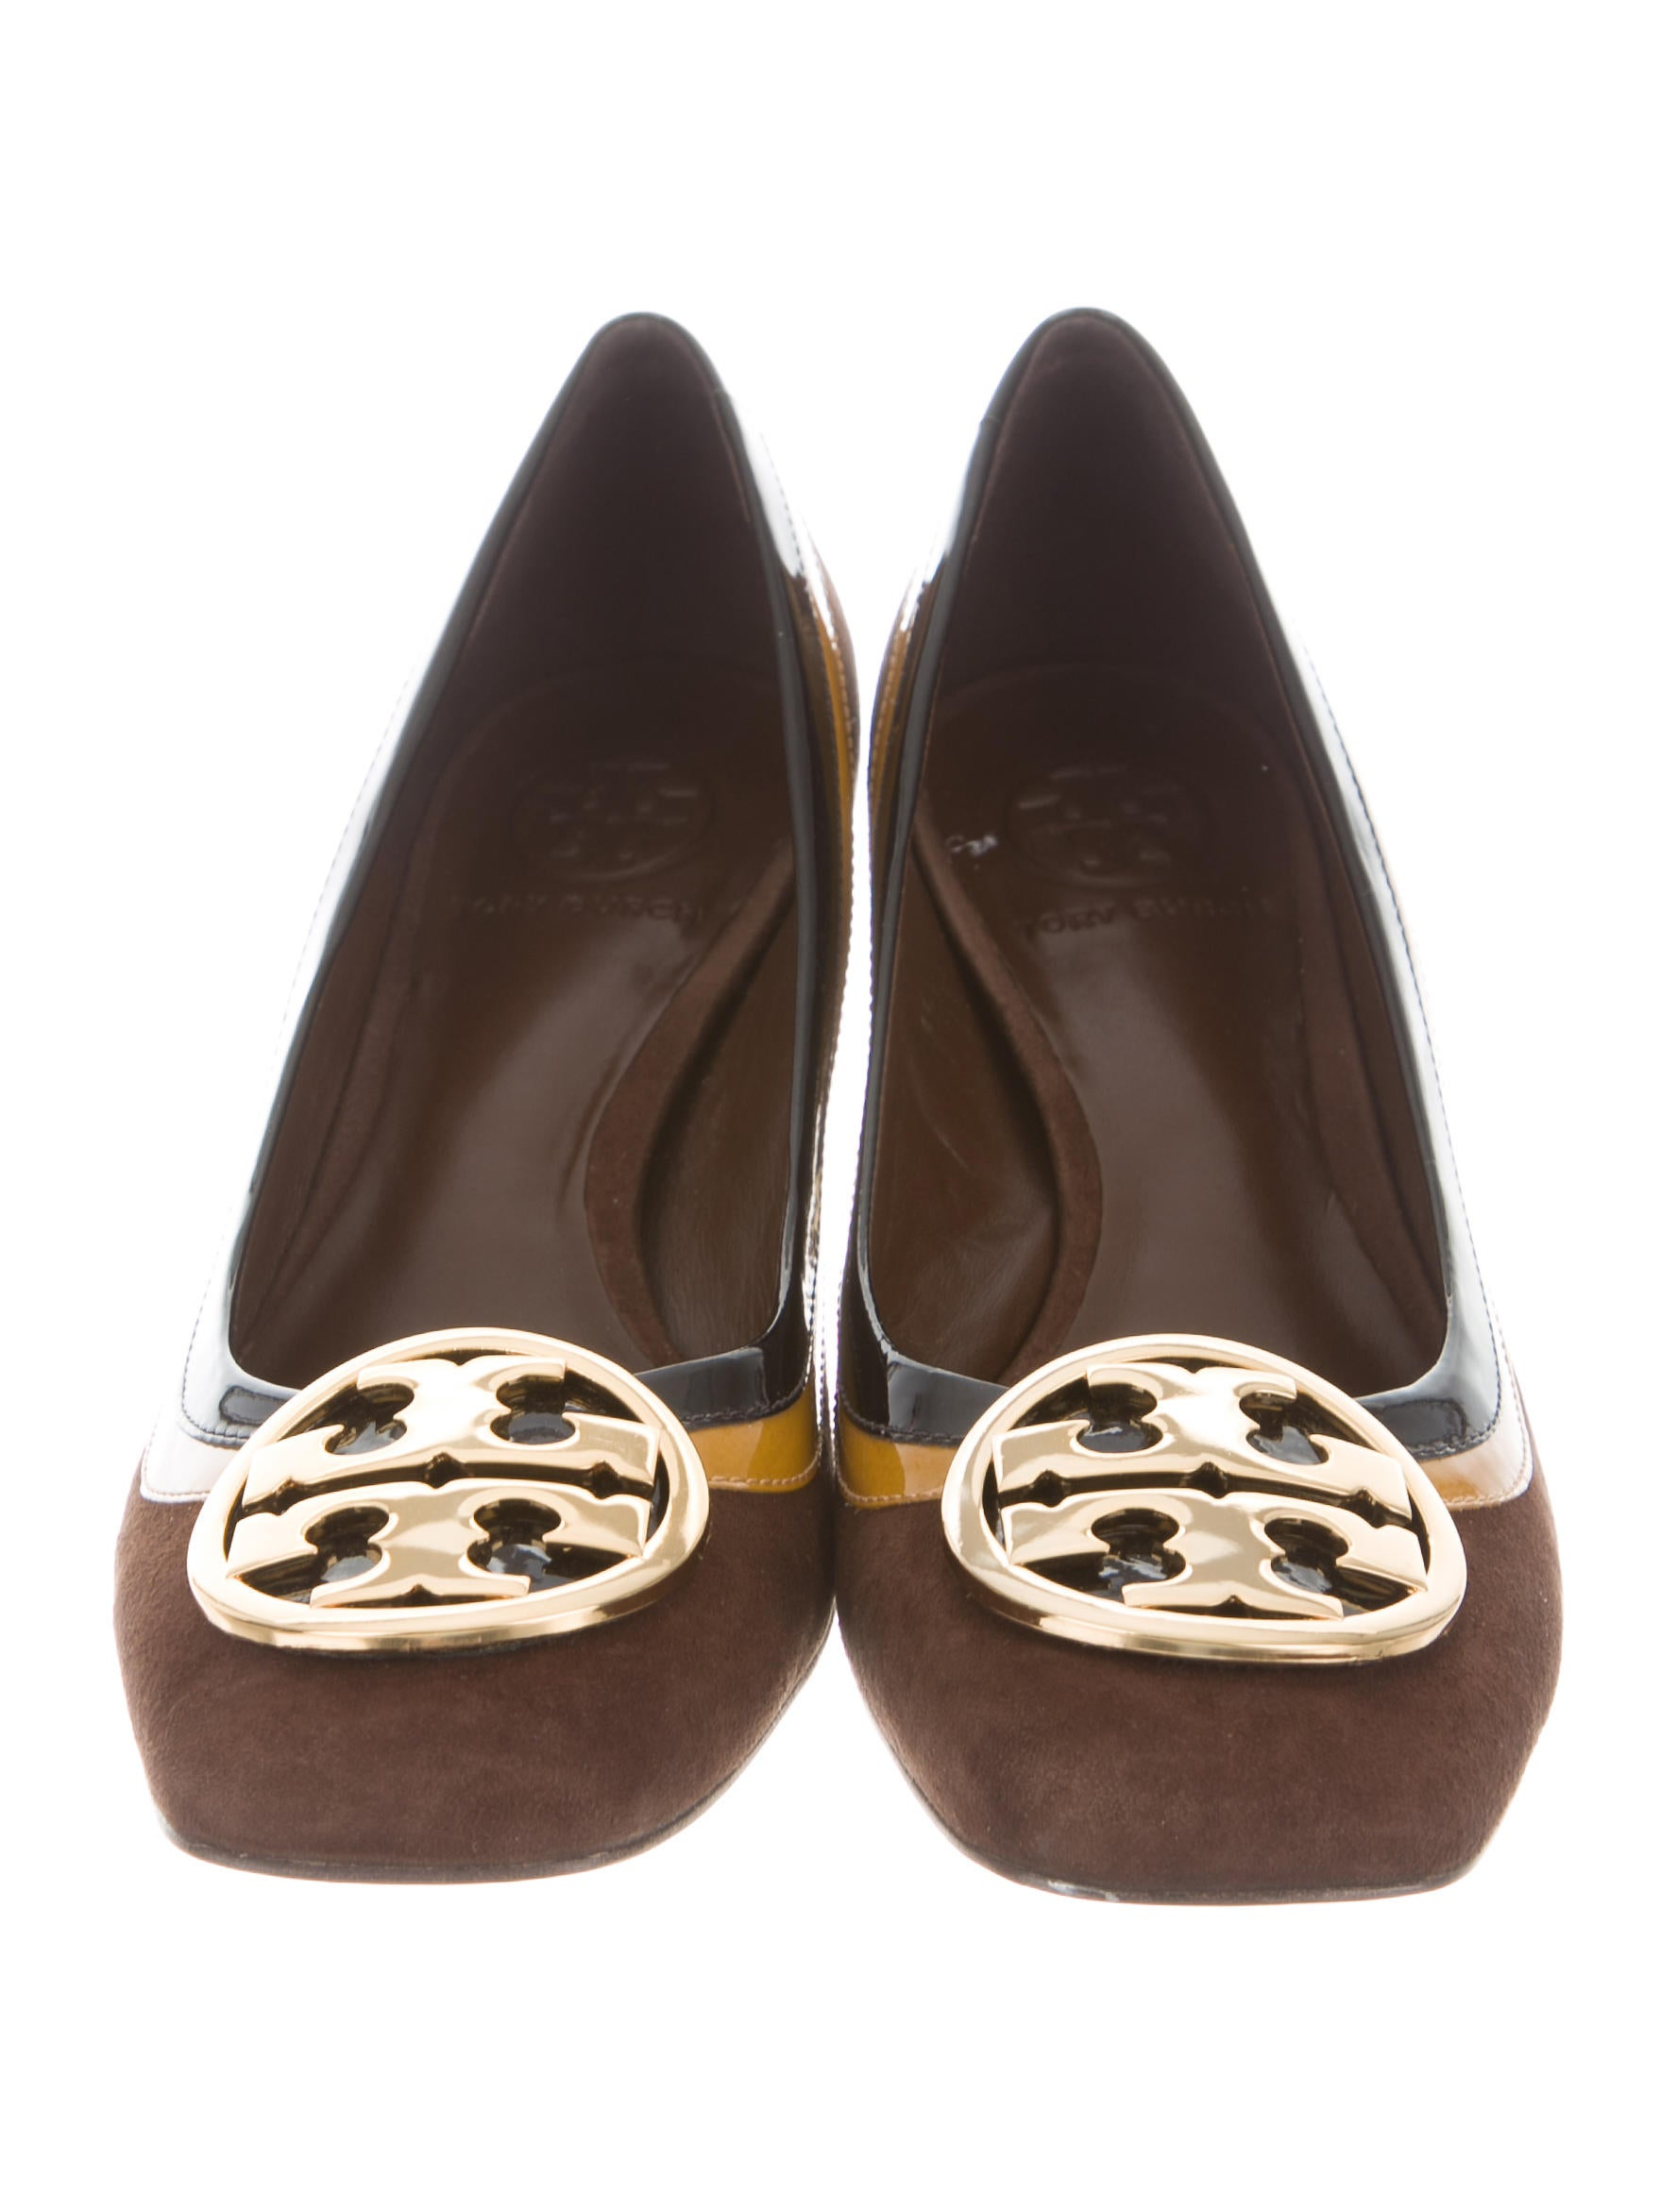 discount very cheap buy cheap extremely Tory Burch Frannie Logo Pumps w/ Tags visa payment for sale cheap authentic 9prD8m